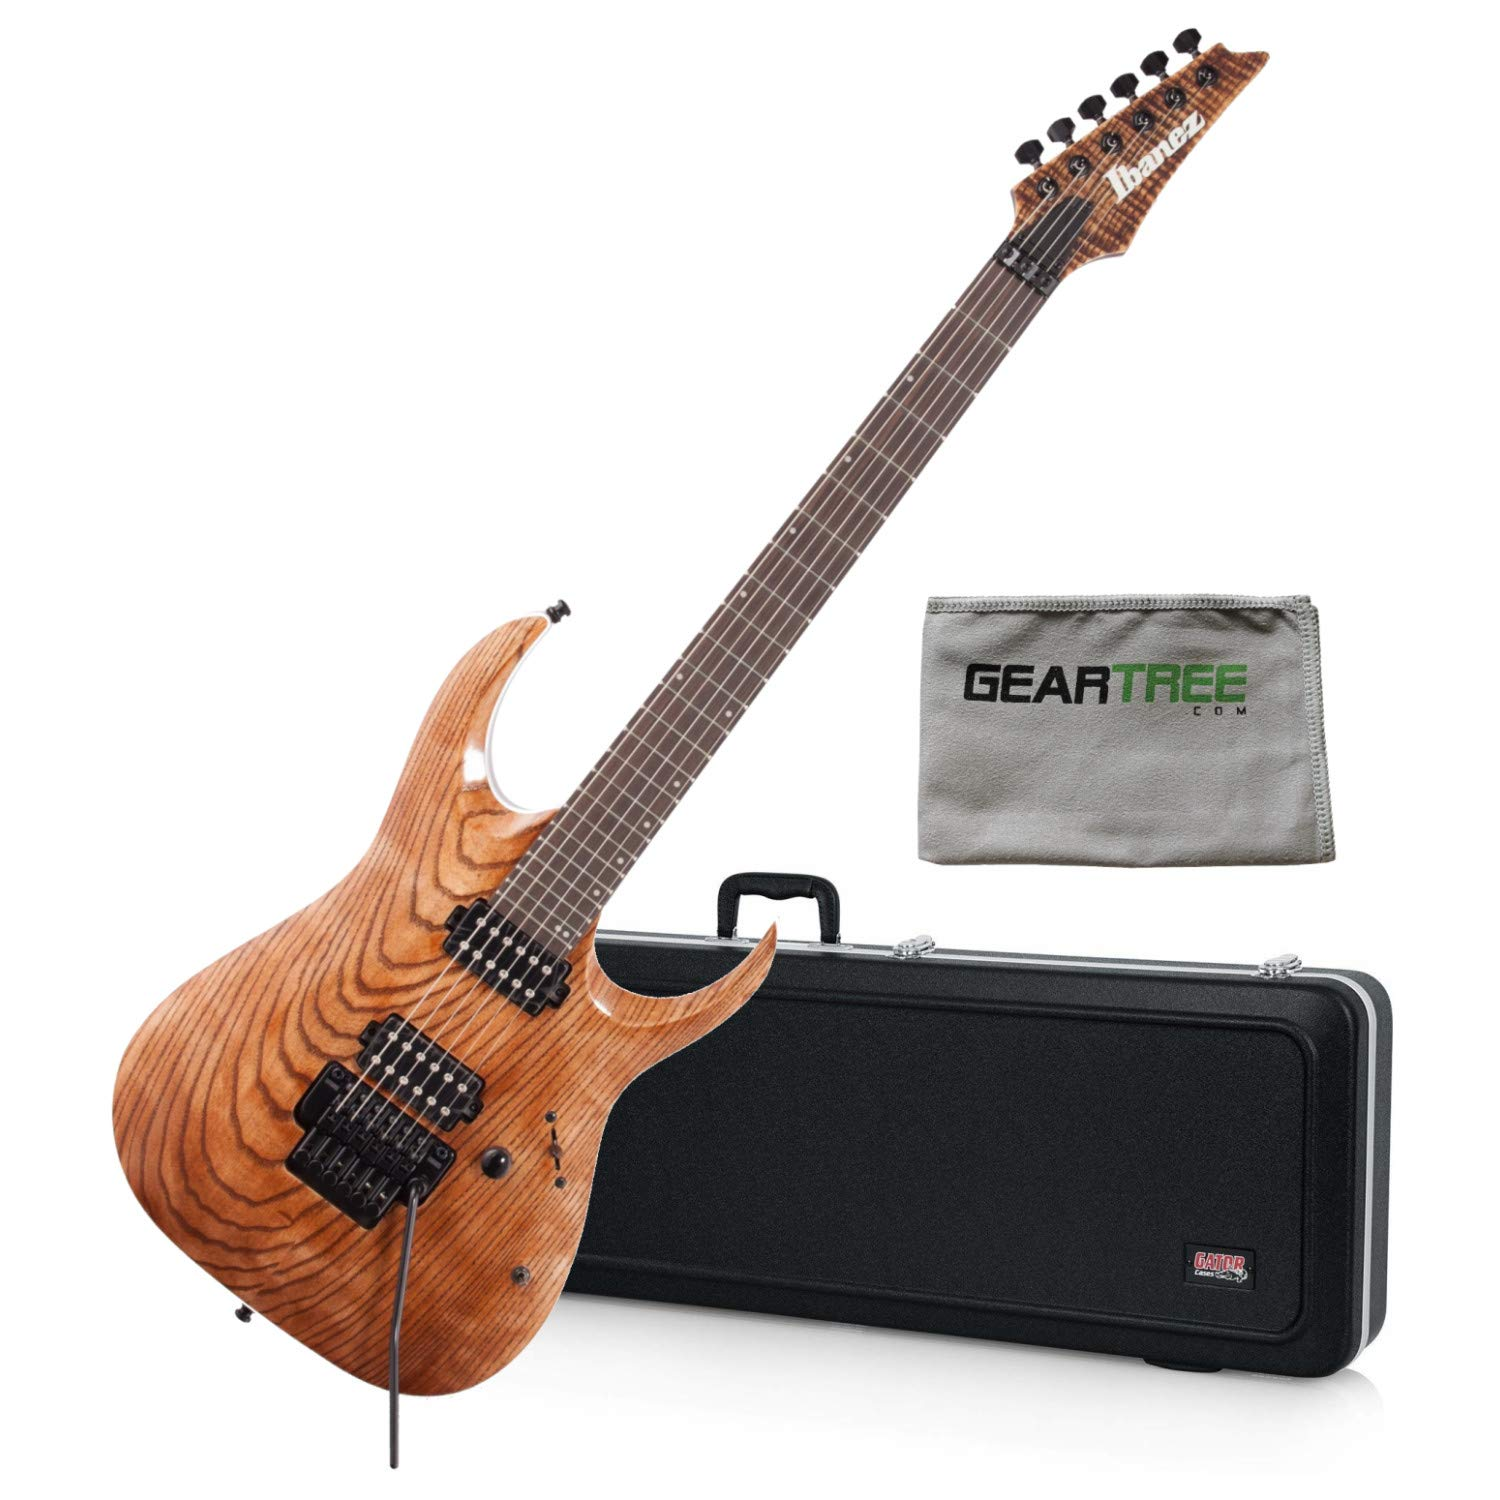 Cheap Ibanez RGA60ALABL RGA Axion Label Electric Guitar - Antique Brown Stained Low Gl Black Friday & Cyber Monday 2019